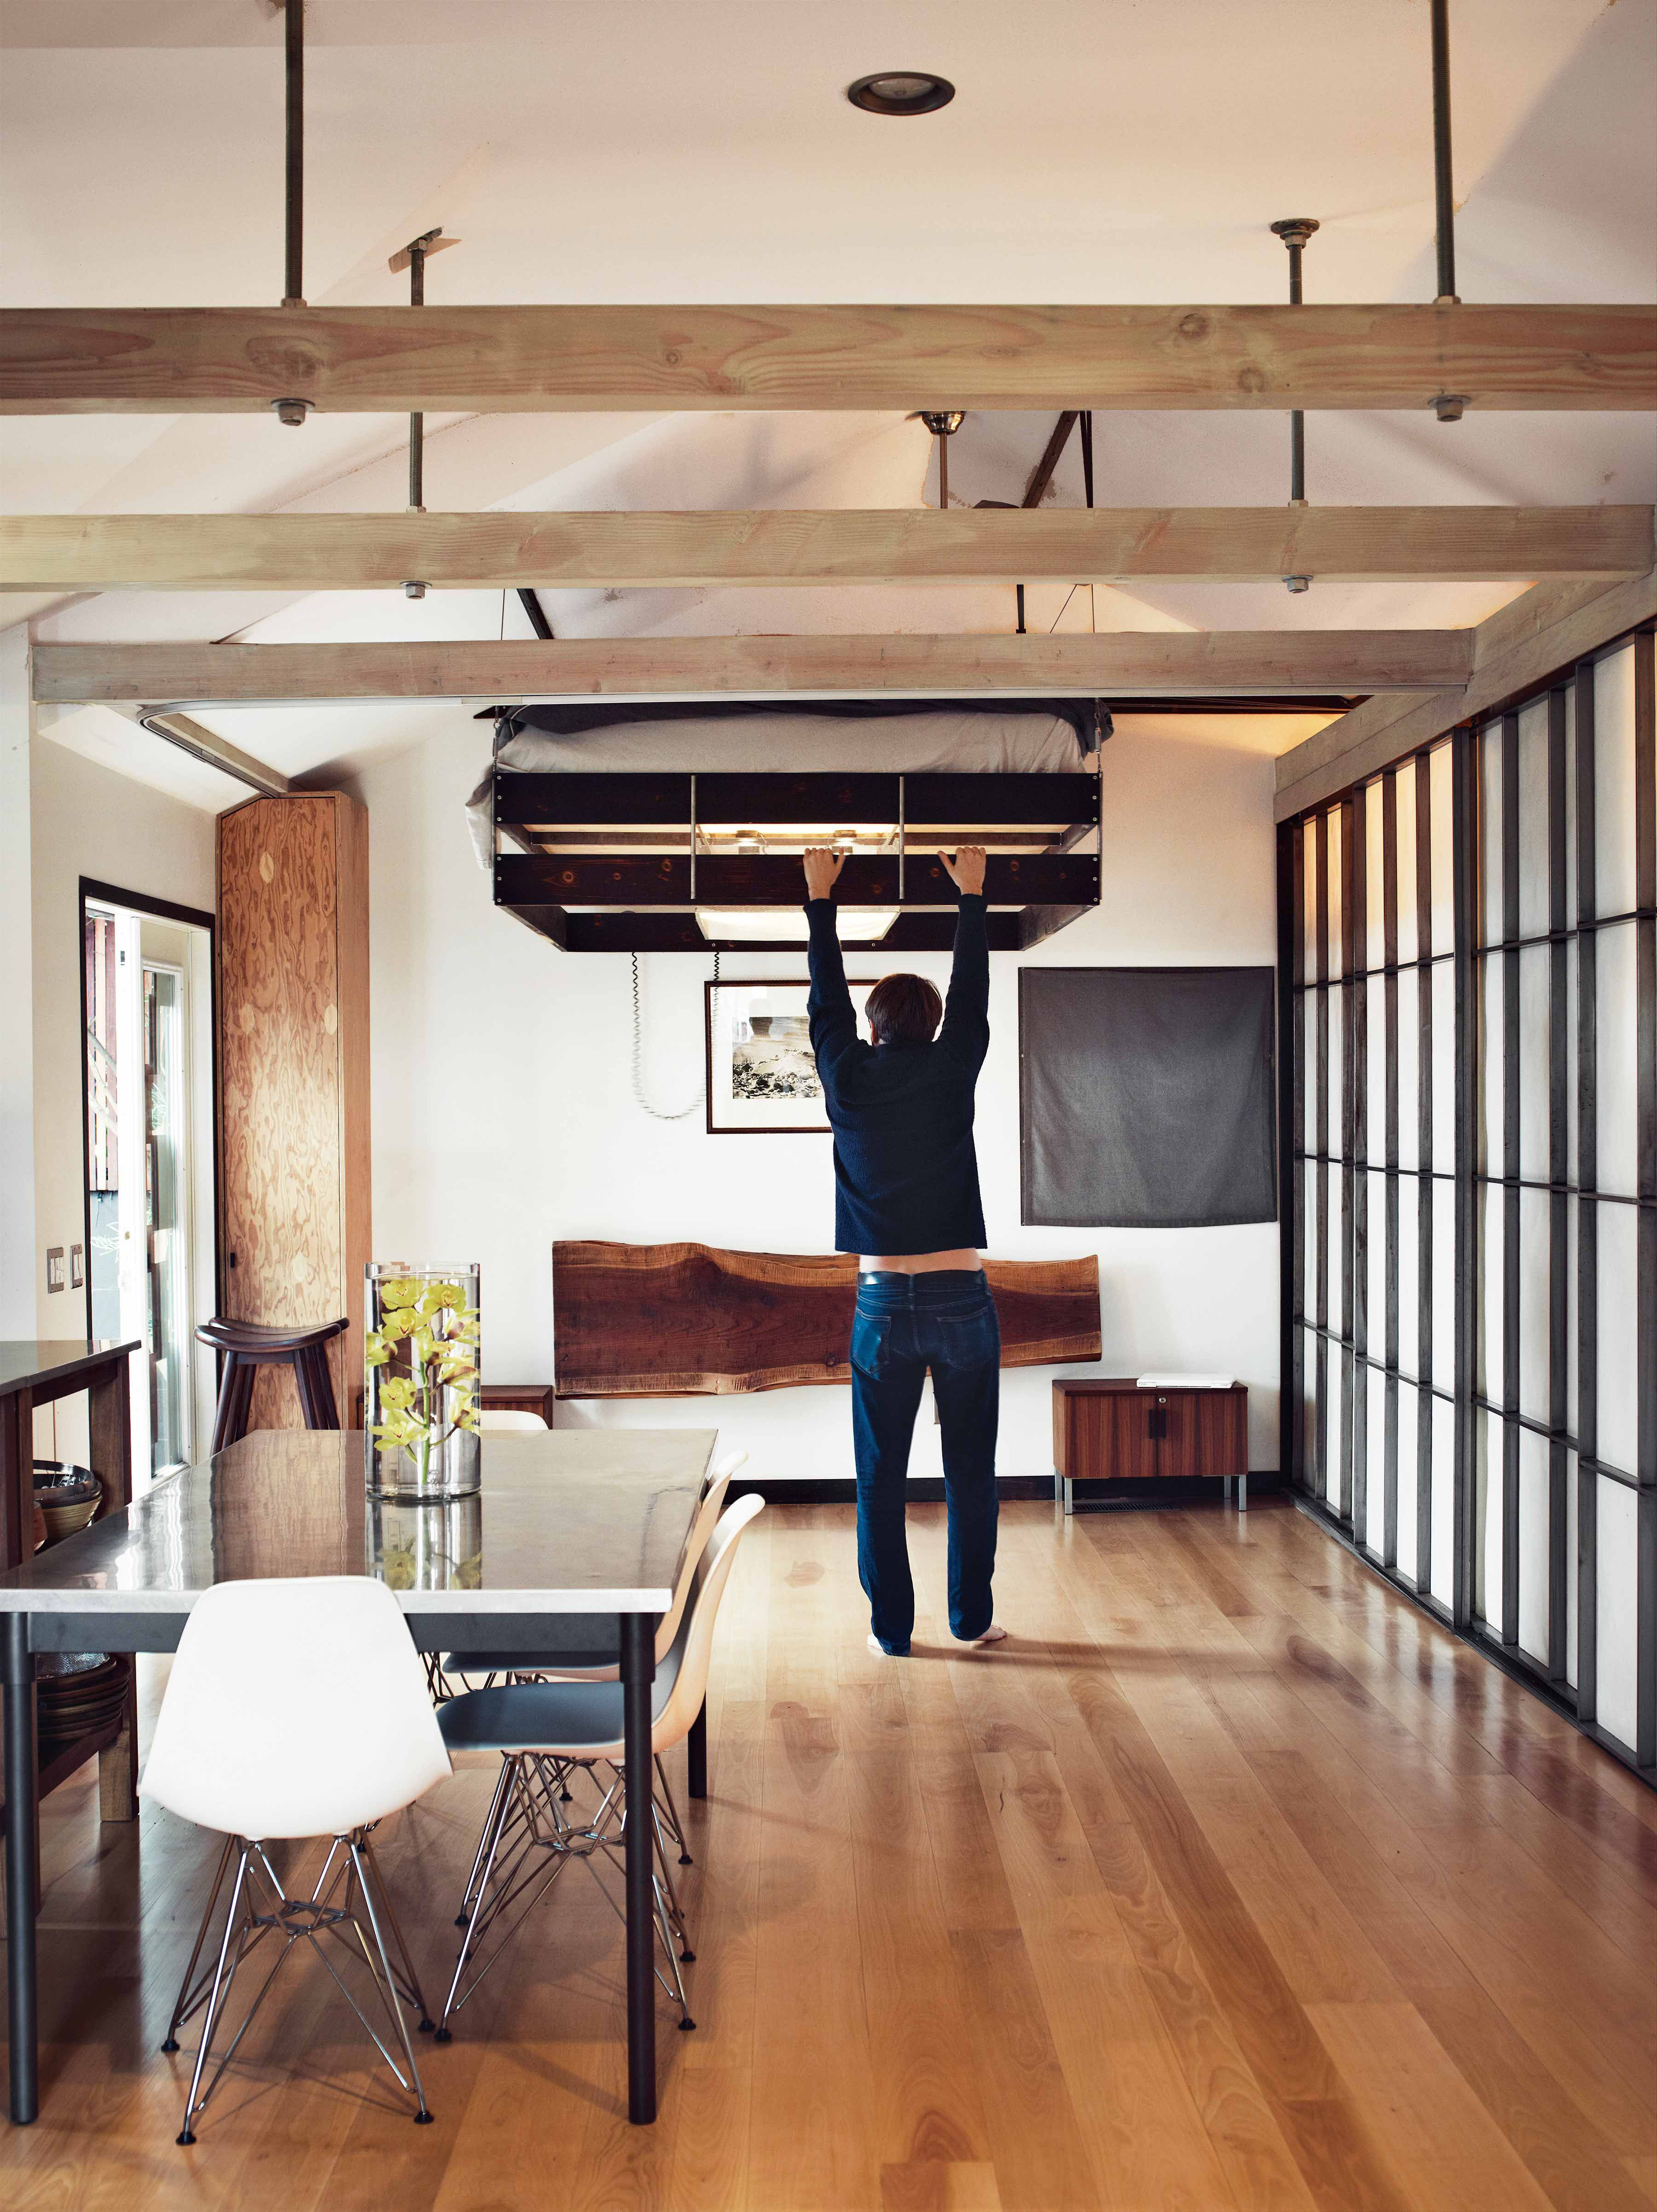 Stylish London Apartment Incorporates Creative Space Saving Solutions - Coworking